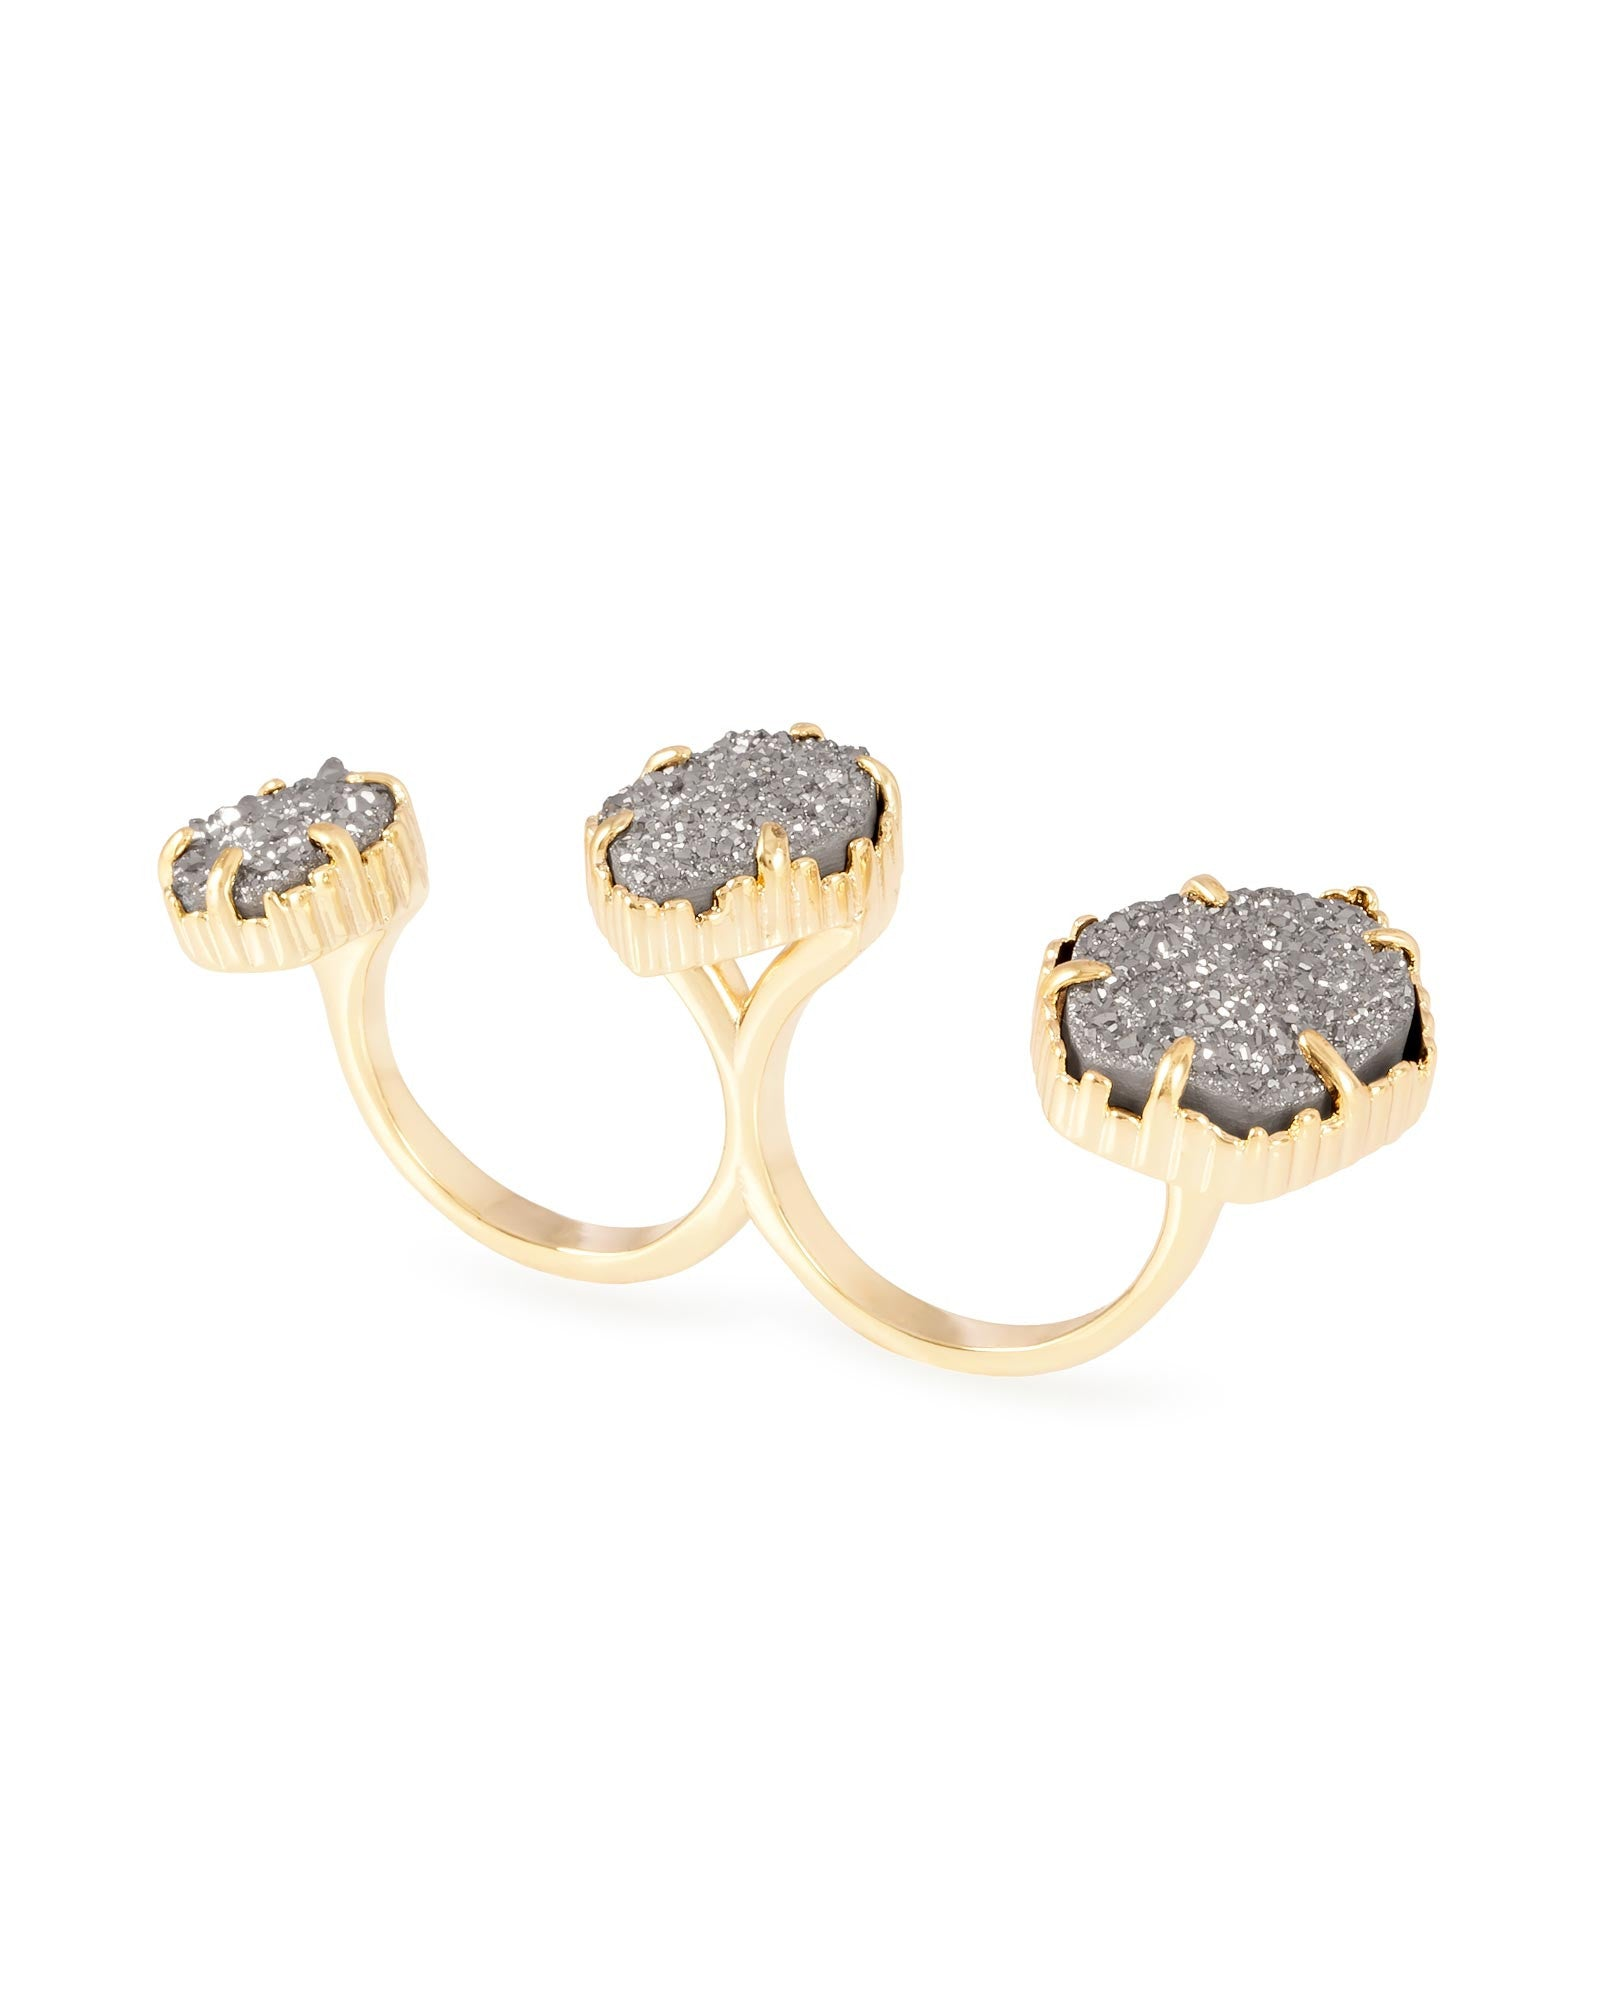 Gold Plated with Grey Druzy Stone Knuckle Ring